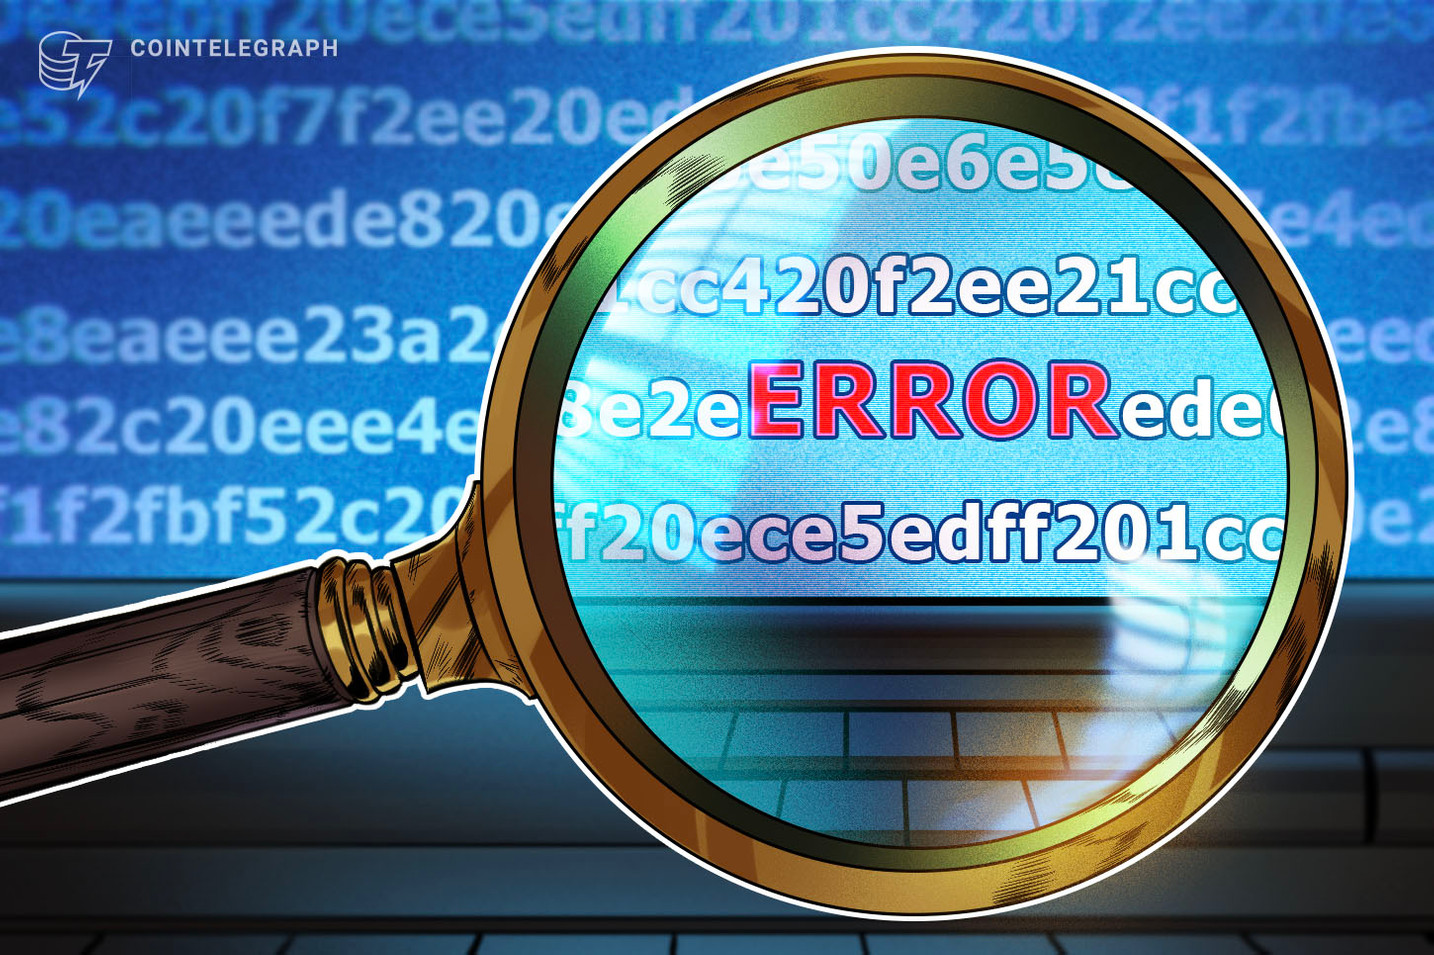 Experts Claim Allegations on MakerDao Vulnerabilities Are Substantial